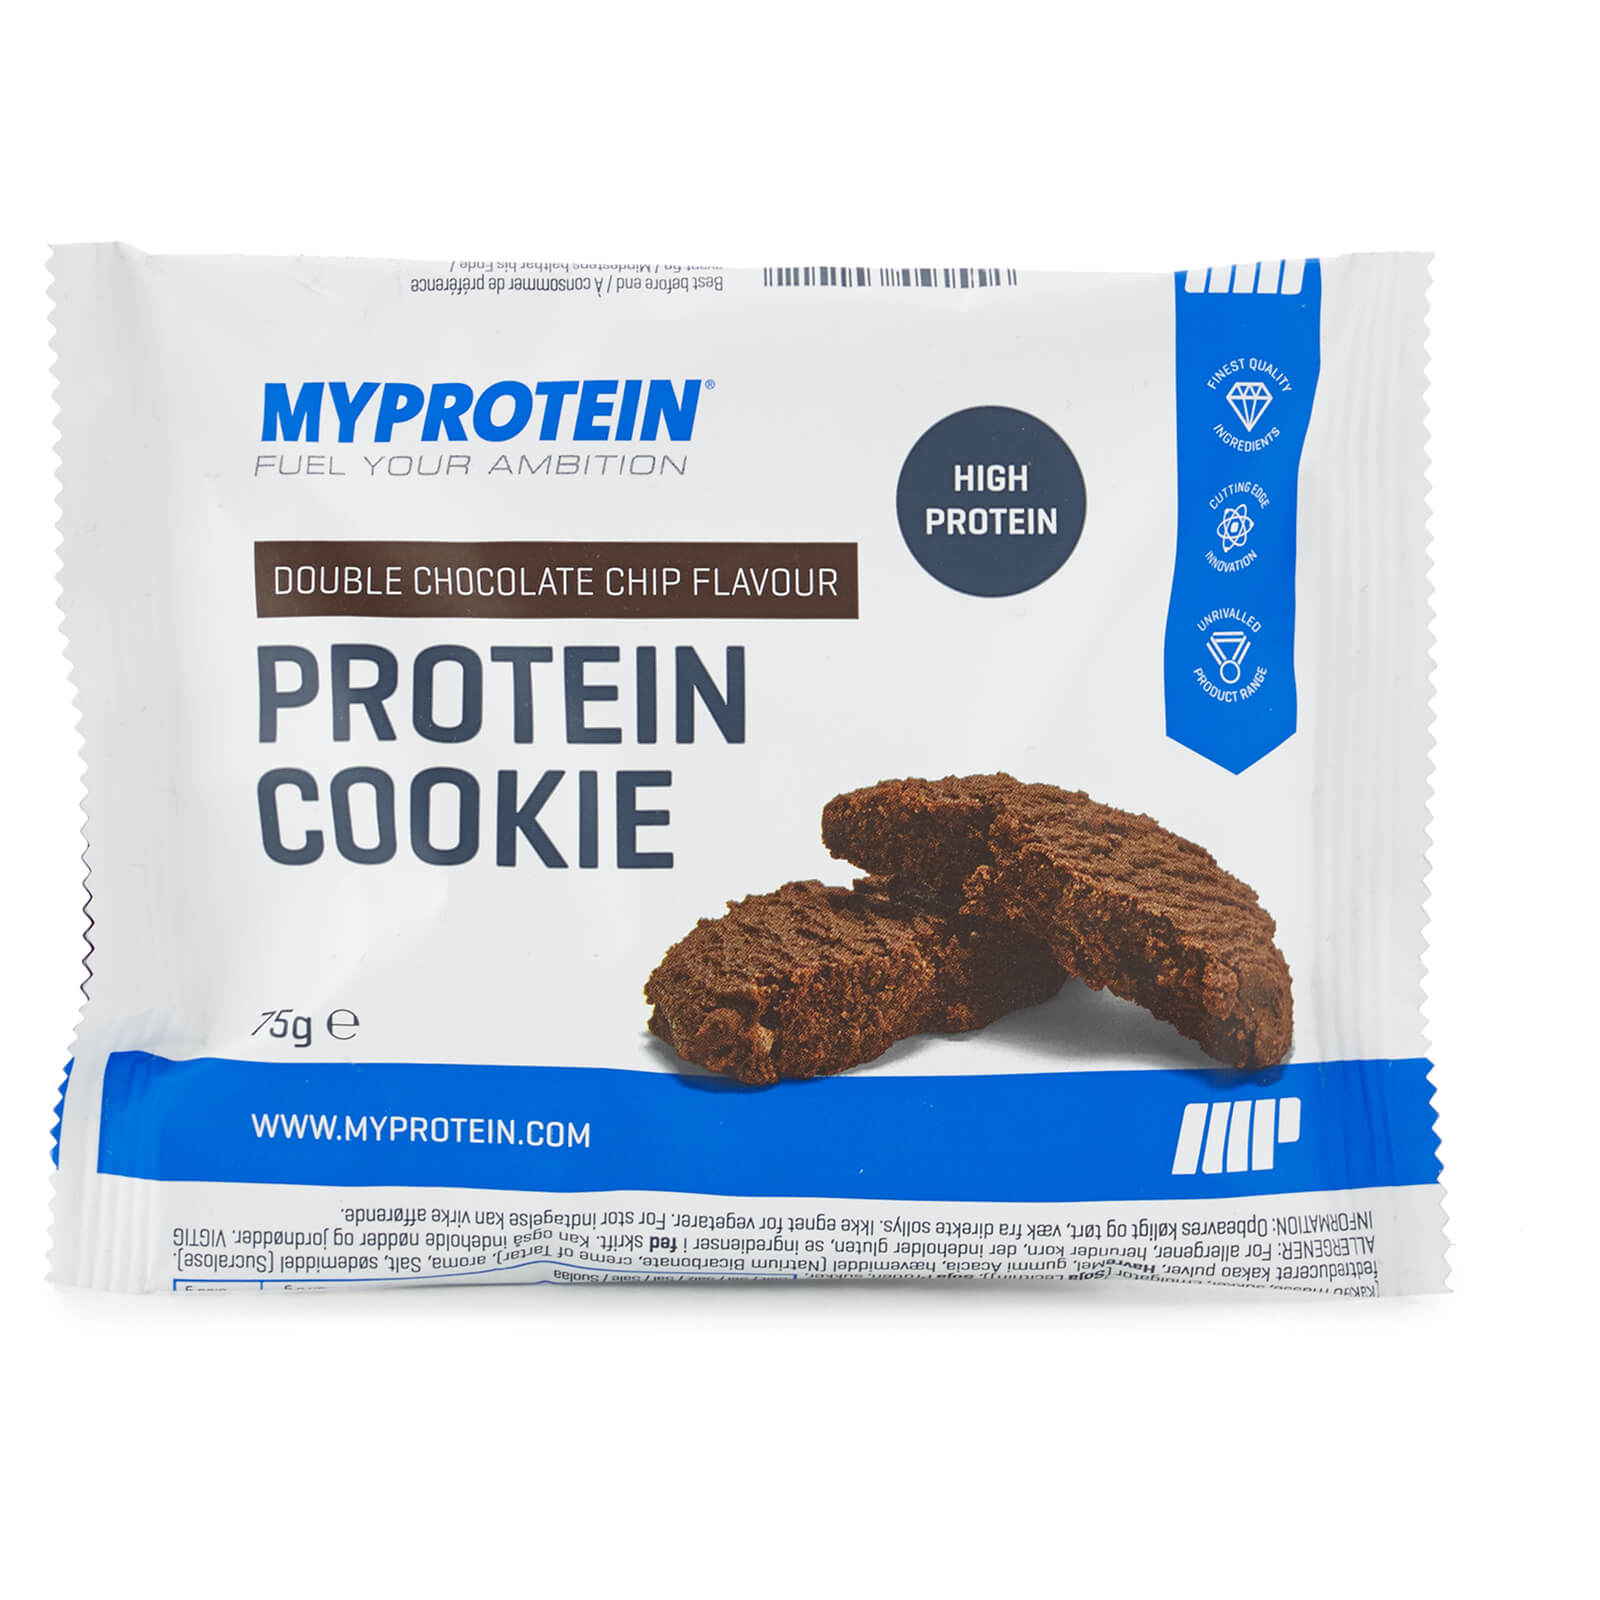 Protein Cookie (Sample) - Double Chocolate - 75g